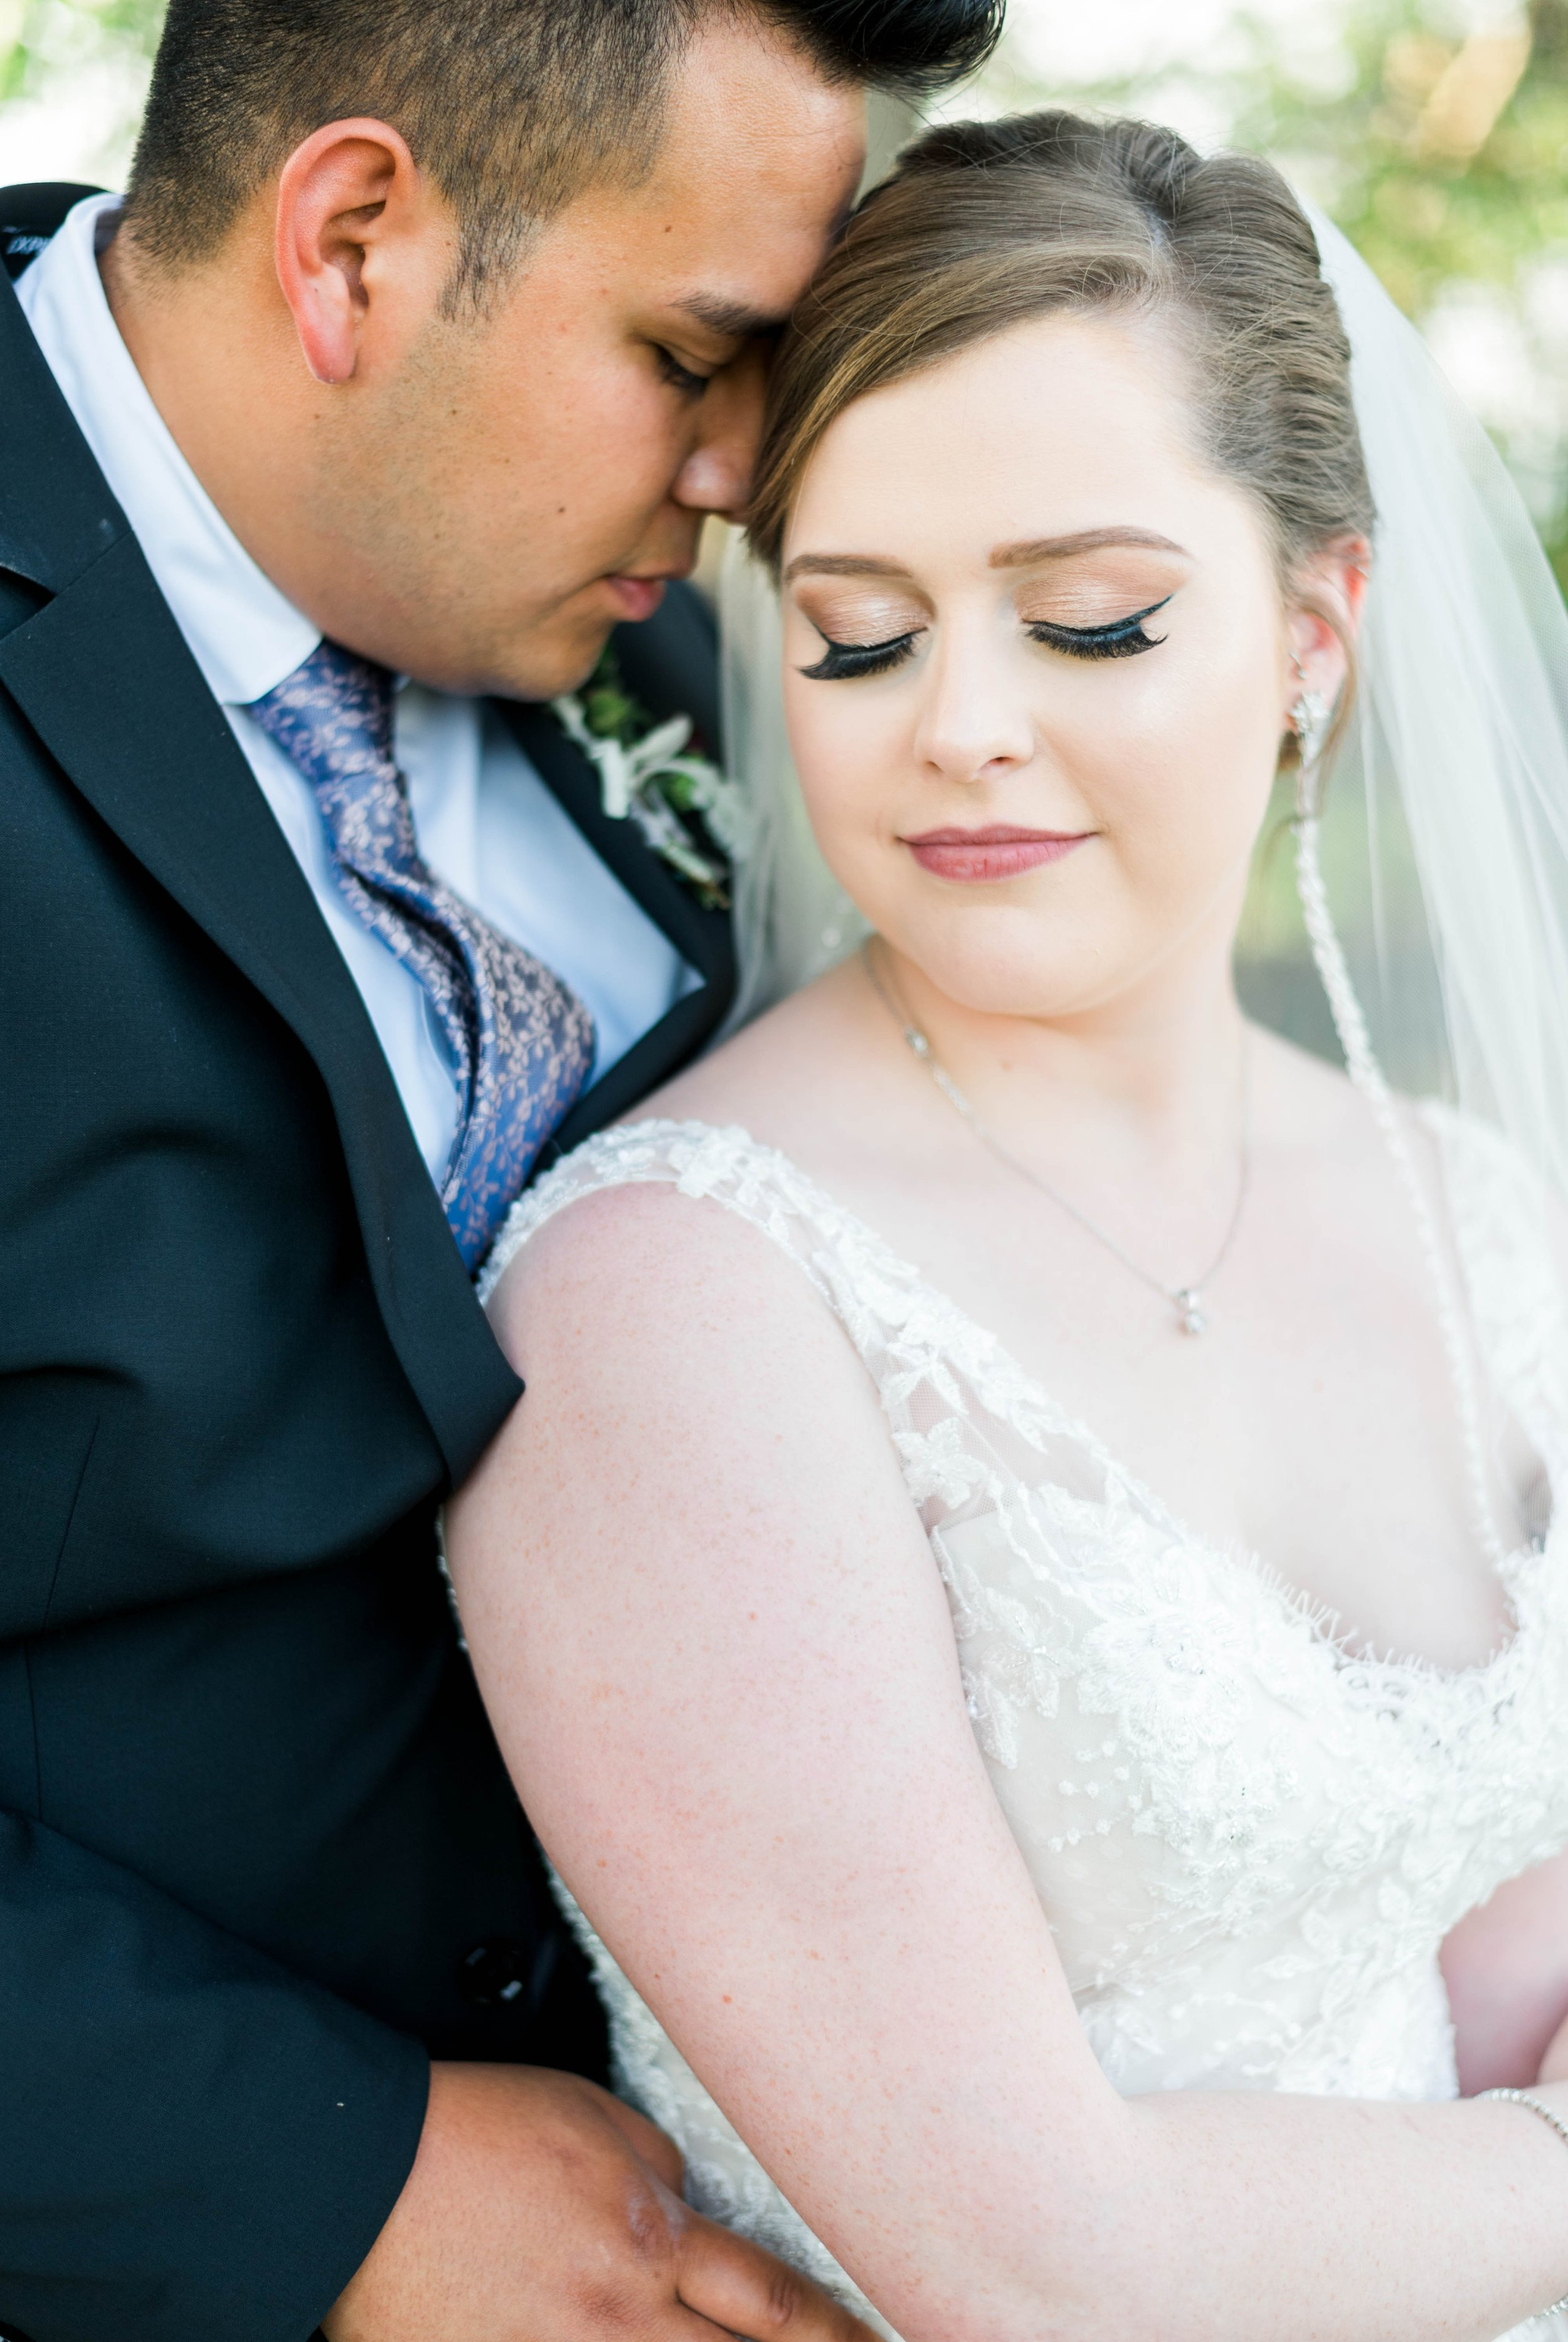 Jillian+Abi_OakridgeEstate_Wedding_VirginiaWeddingPhotographer_SpringWedding 34.jpg